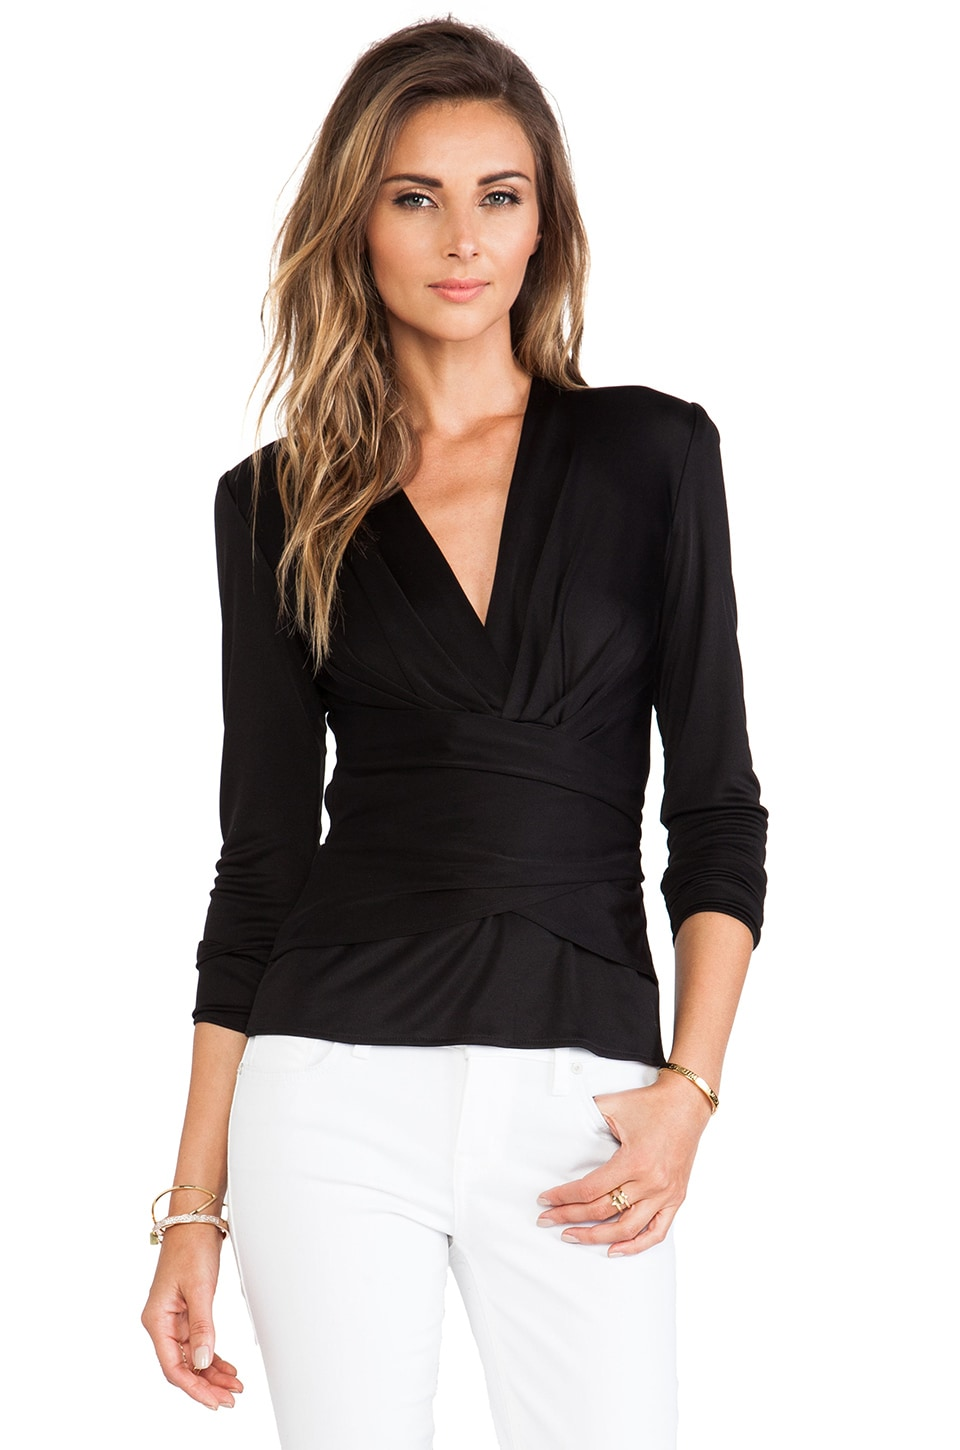 Issa Kathryn Long Sleeve Wrap Top in Black